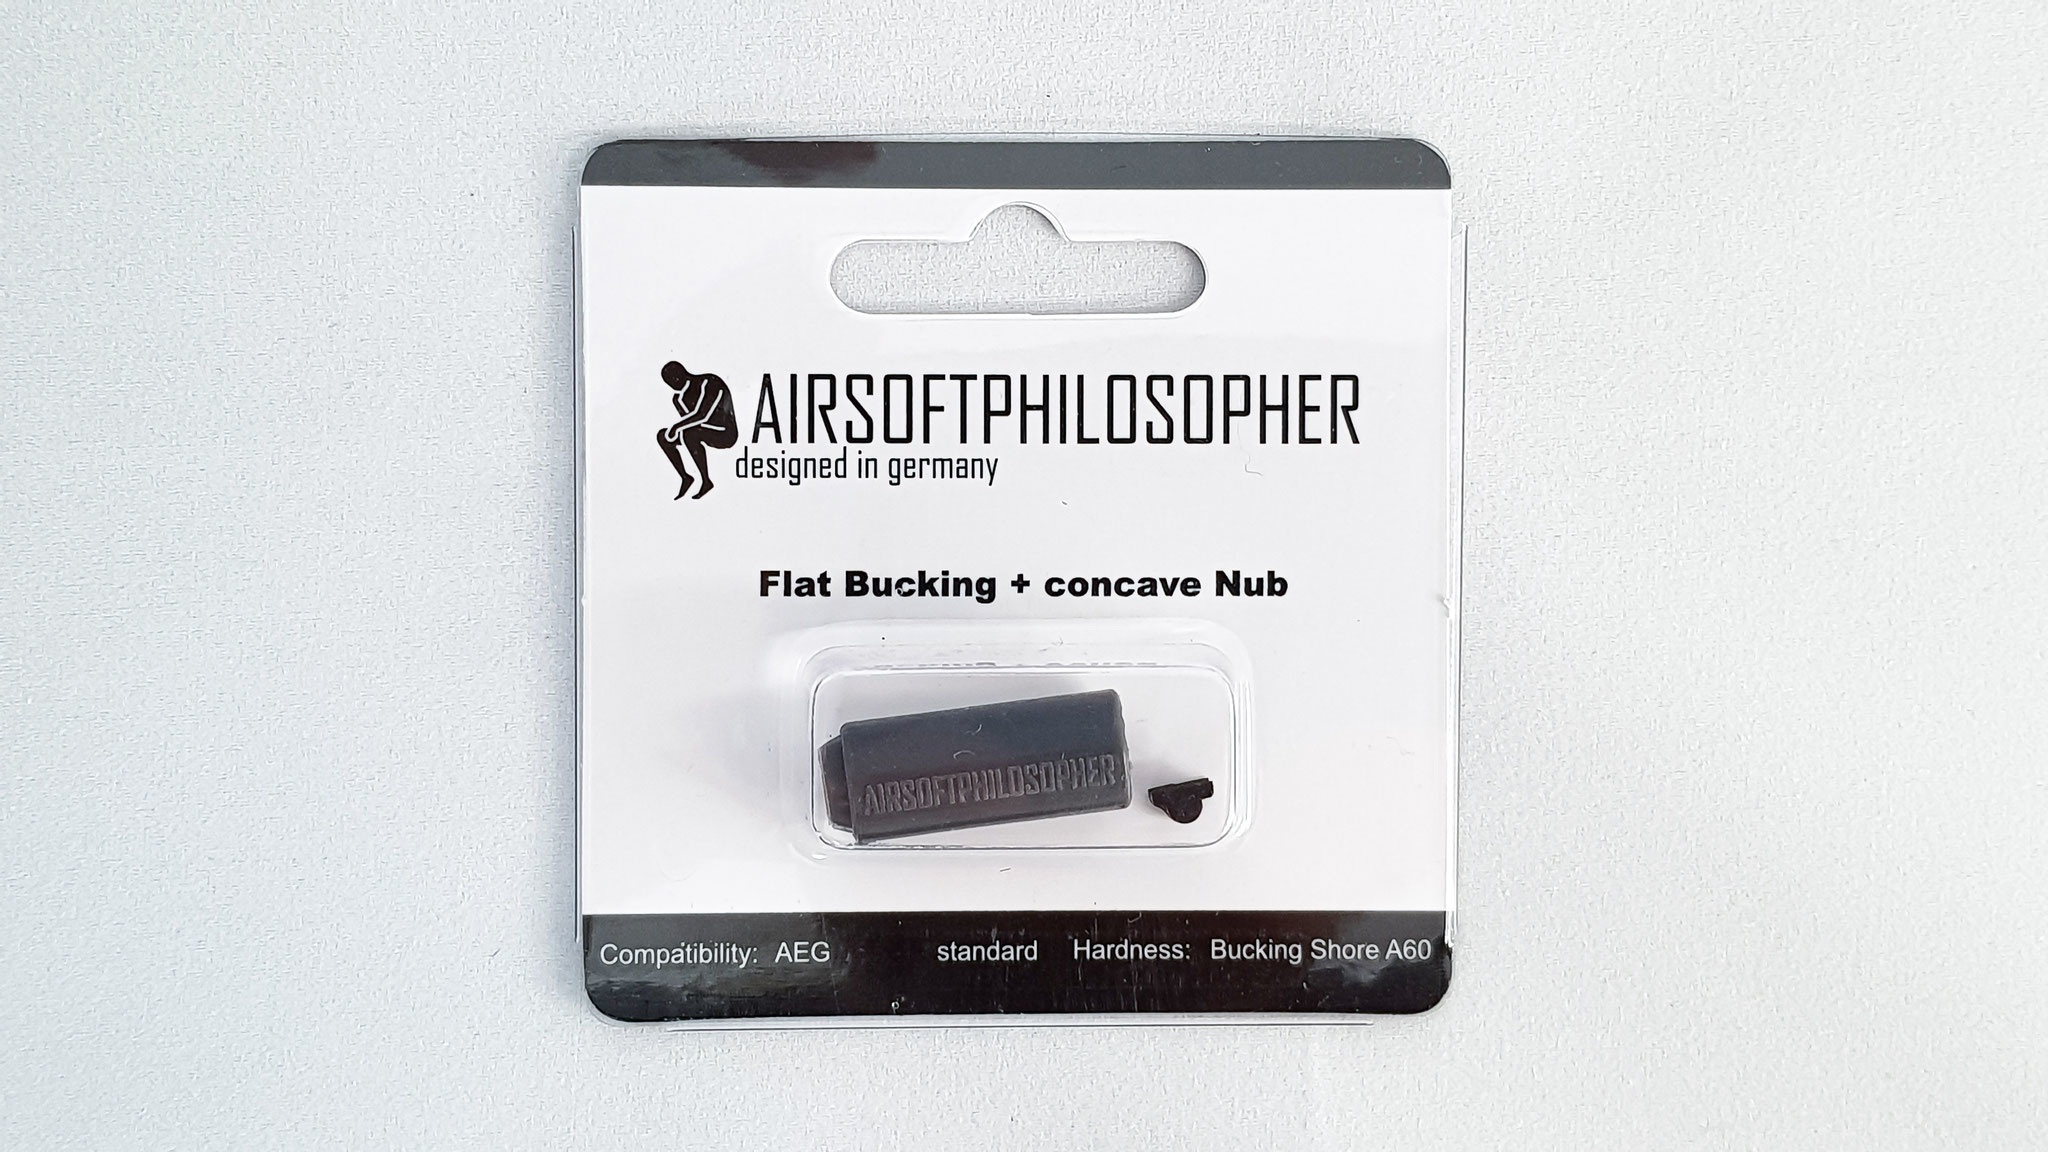 Airsoft Philosopher Airsoftphilosopher Flat AEG bucking 60º (grey)